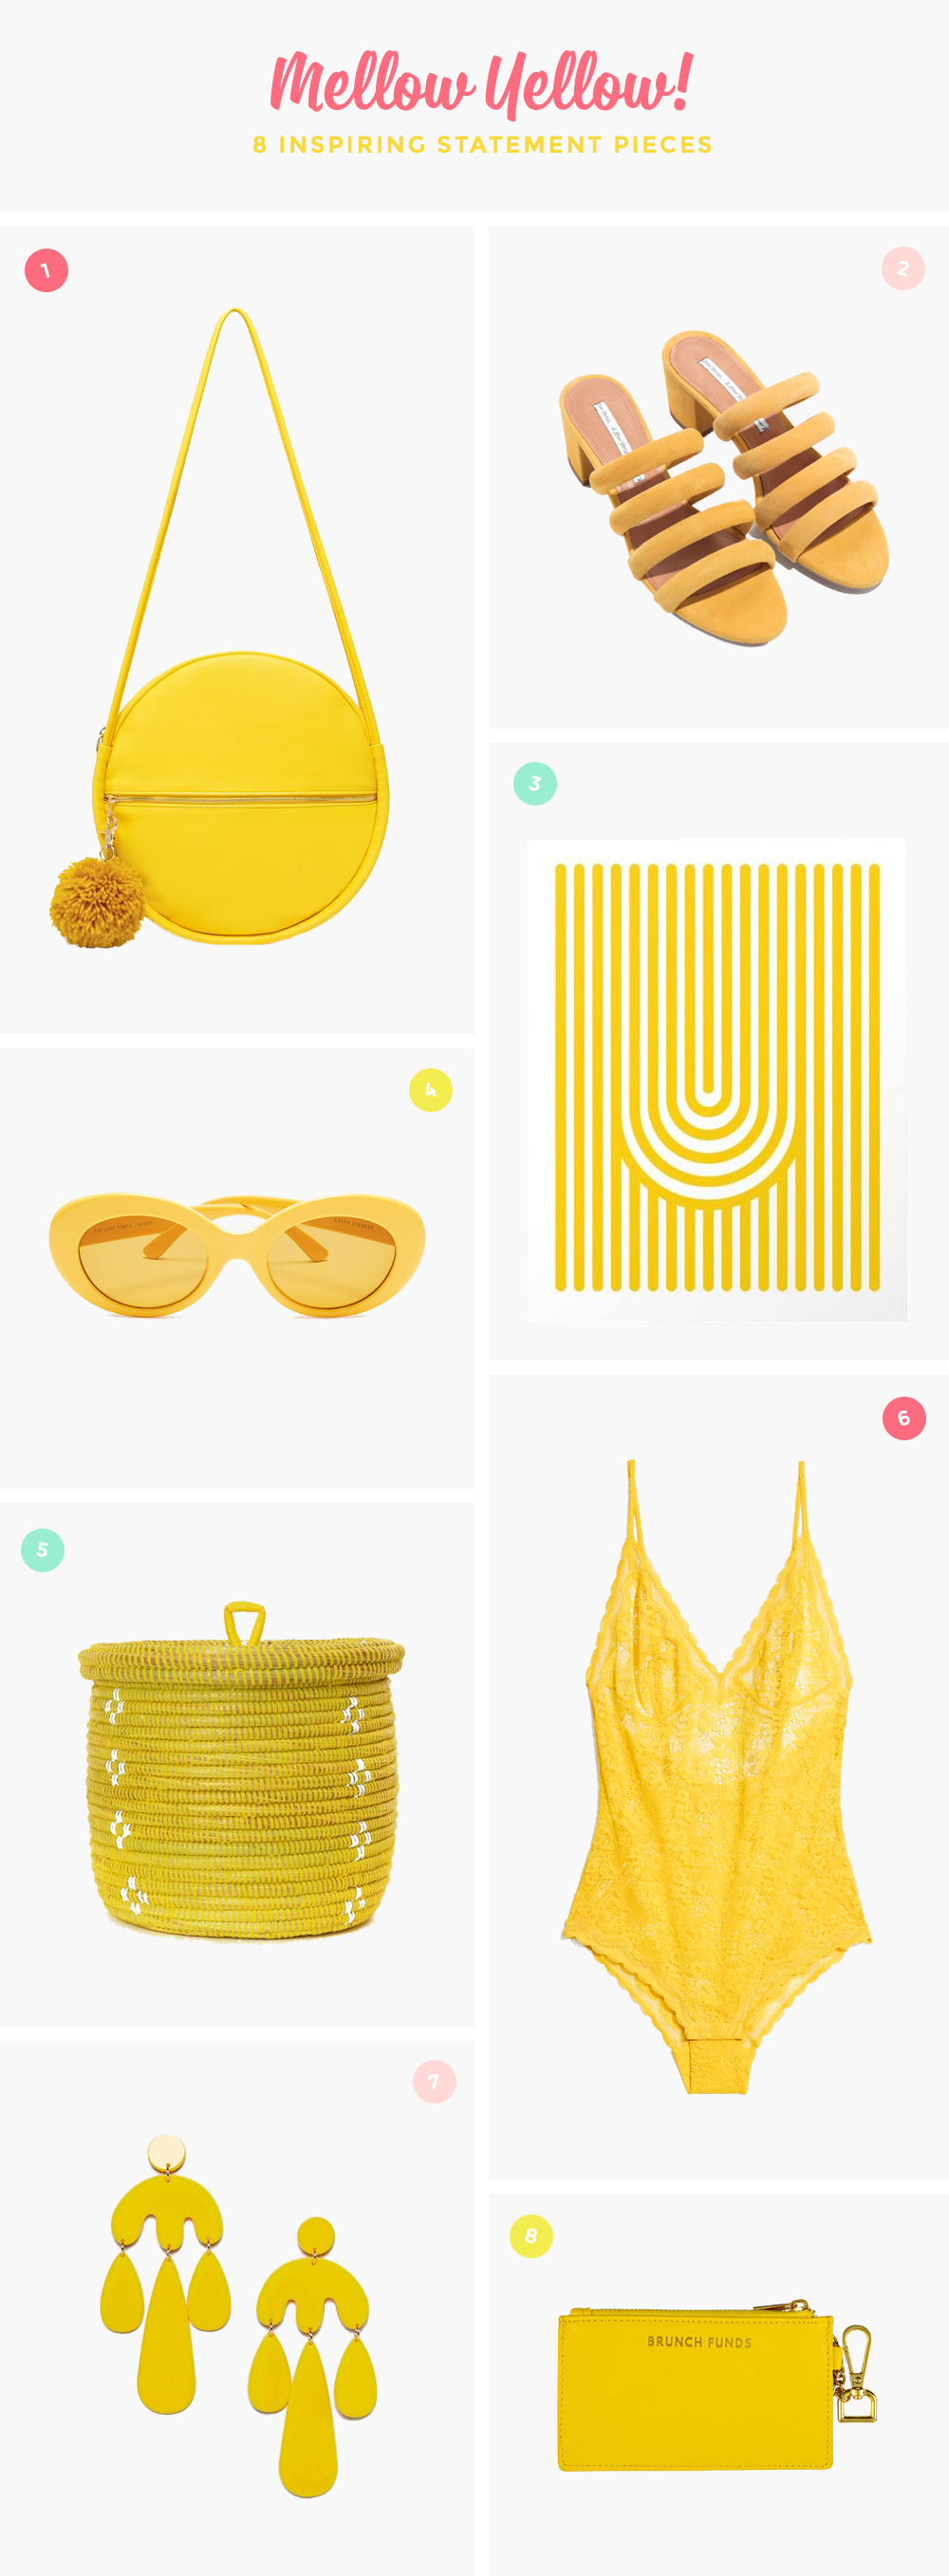 8 incredibly inspiring yellow statement pieces that will add color to your life #yellow